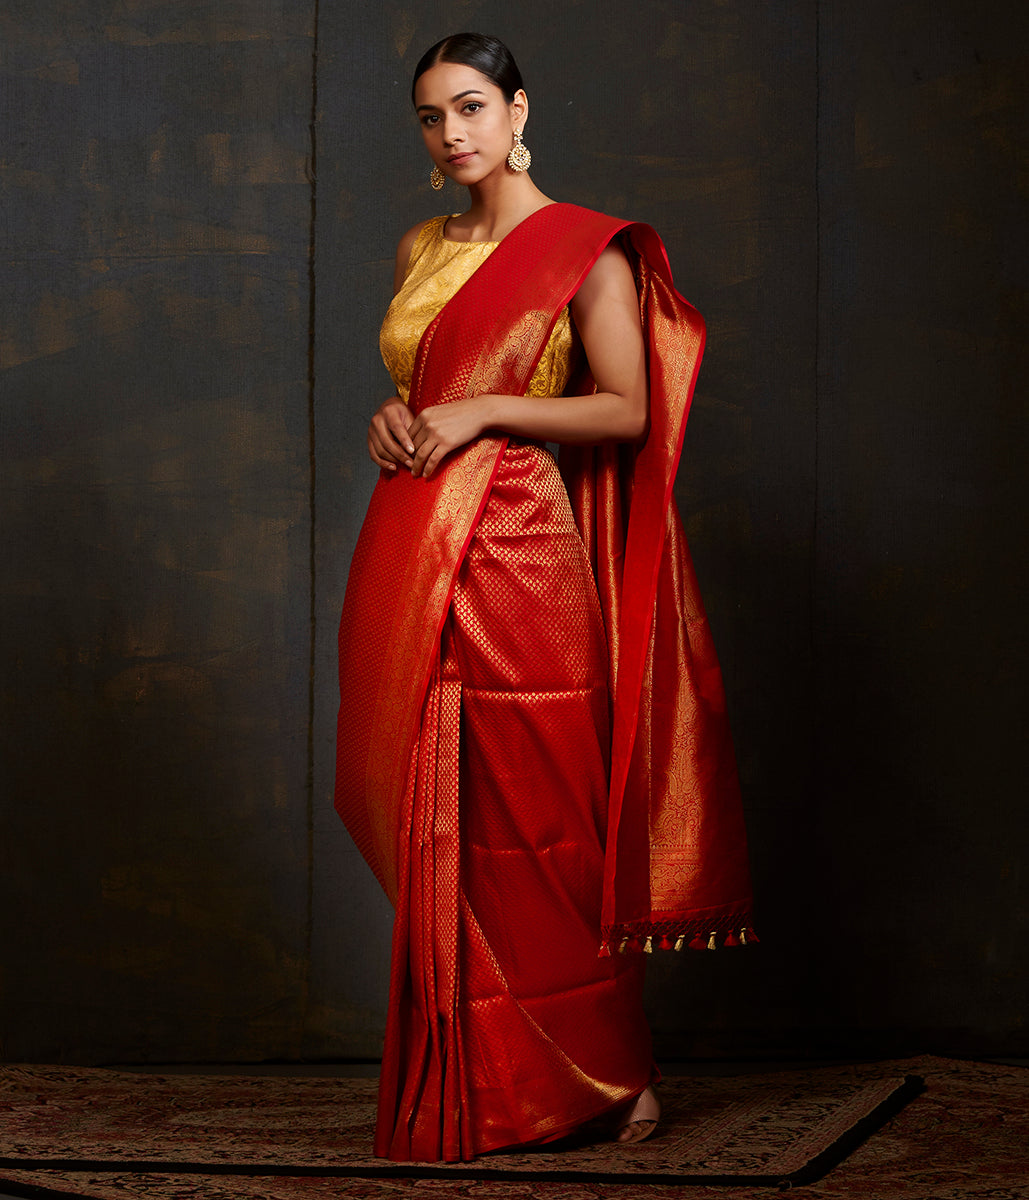 Red katan silk saree with small paisley motifs